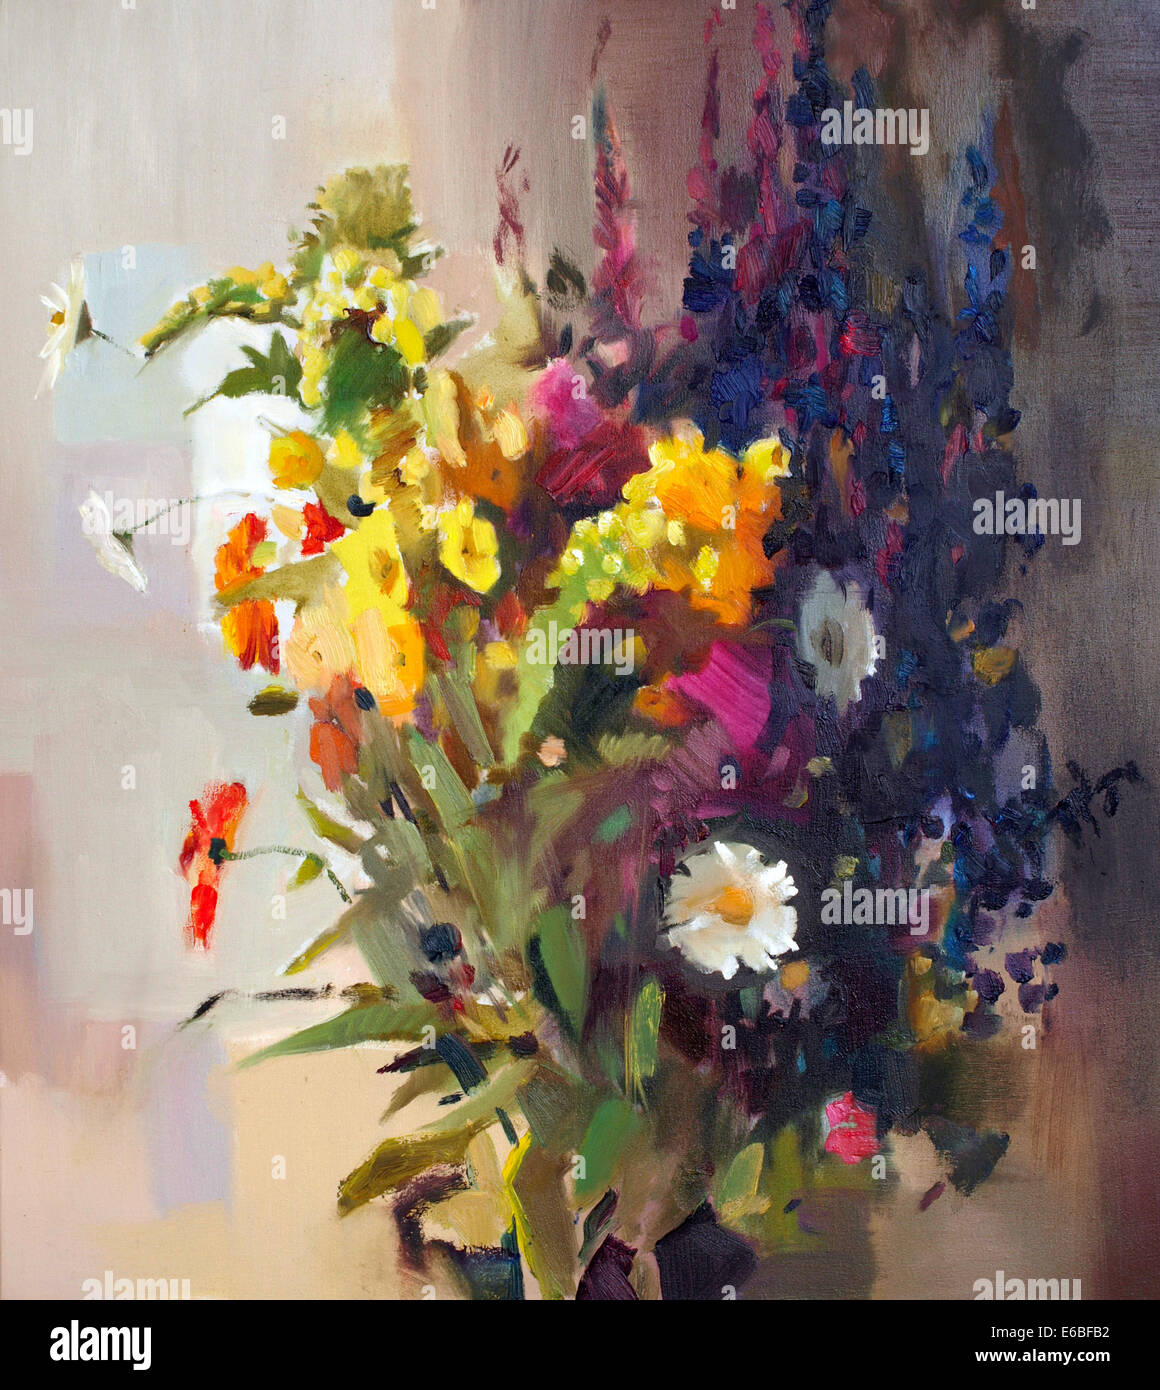 Oil painting of the beautiful flowers stock photo 72782950 alamy oil painting of the beautiful flowers izmirmasajfo